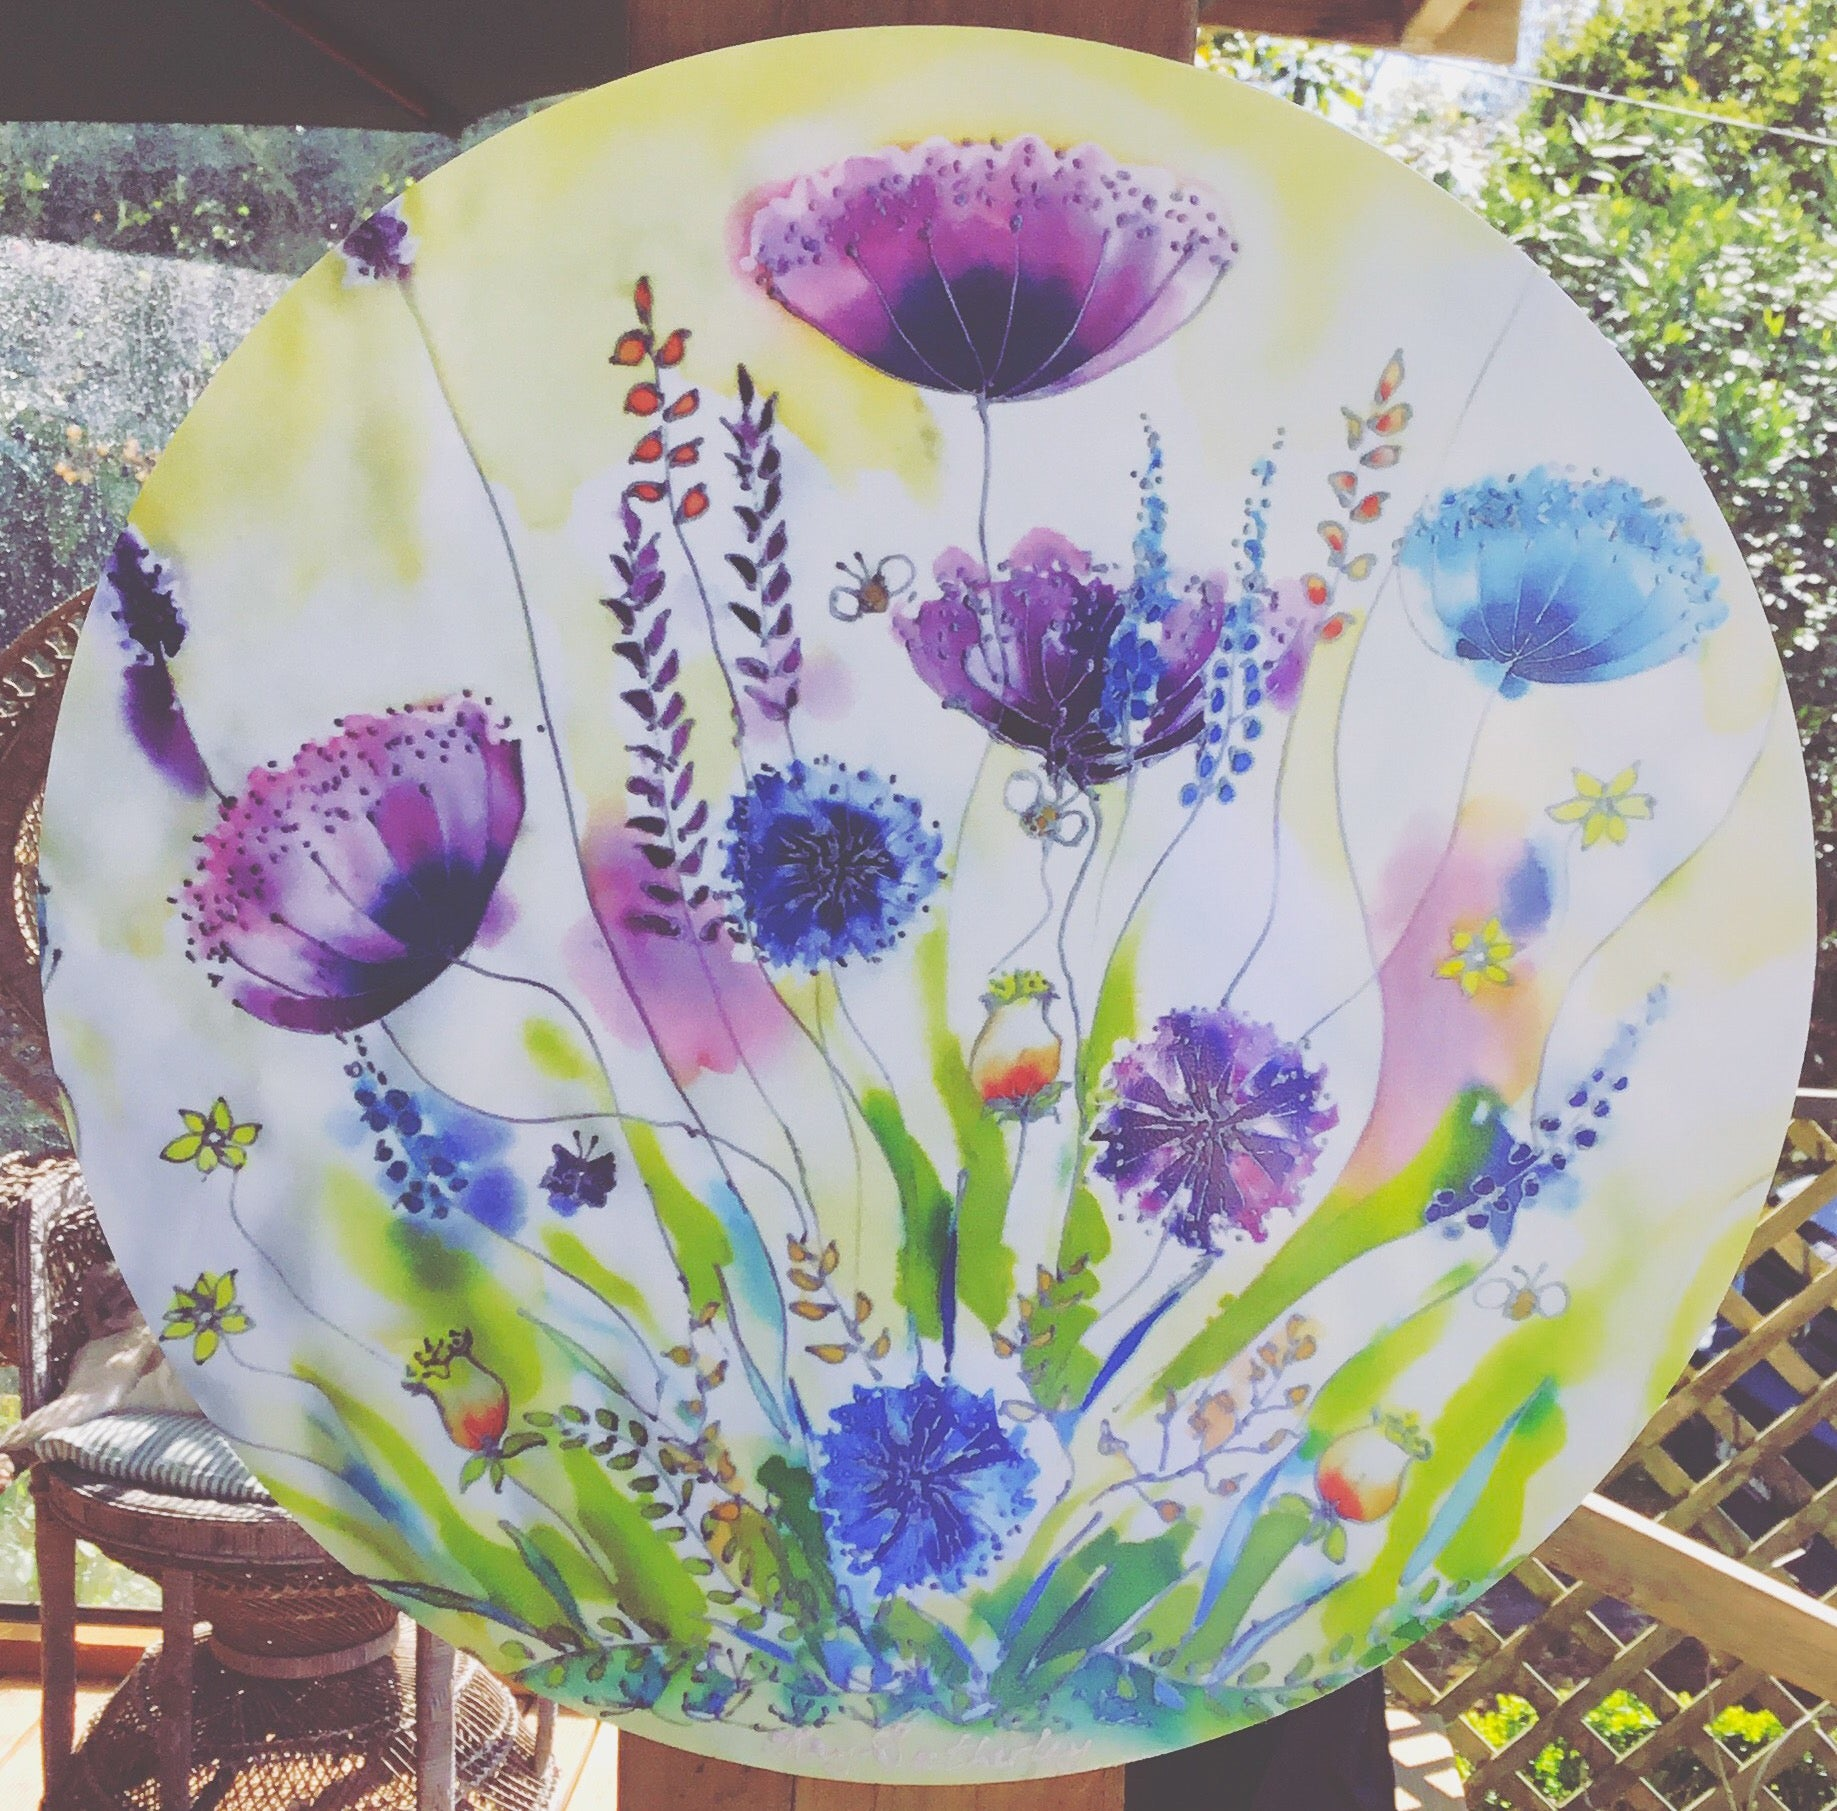 Wildflowers Circle Outdoor Art Panel - Satherley Silks NZ